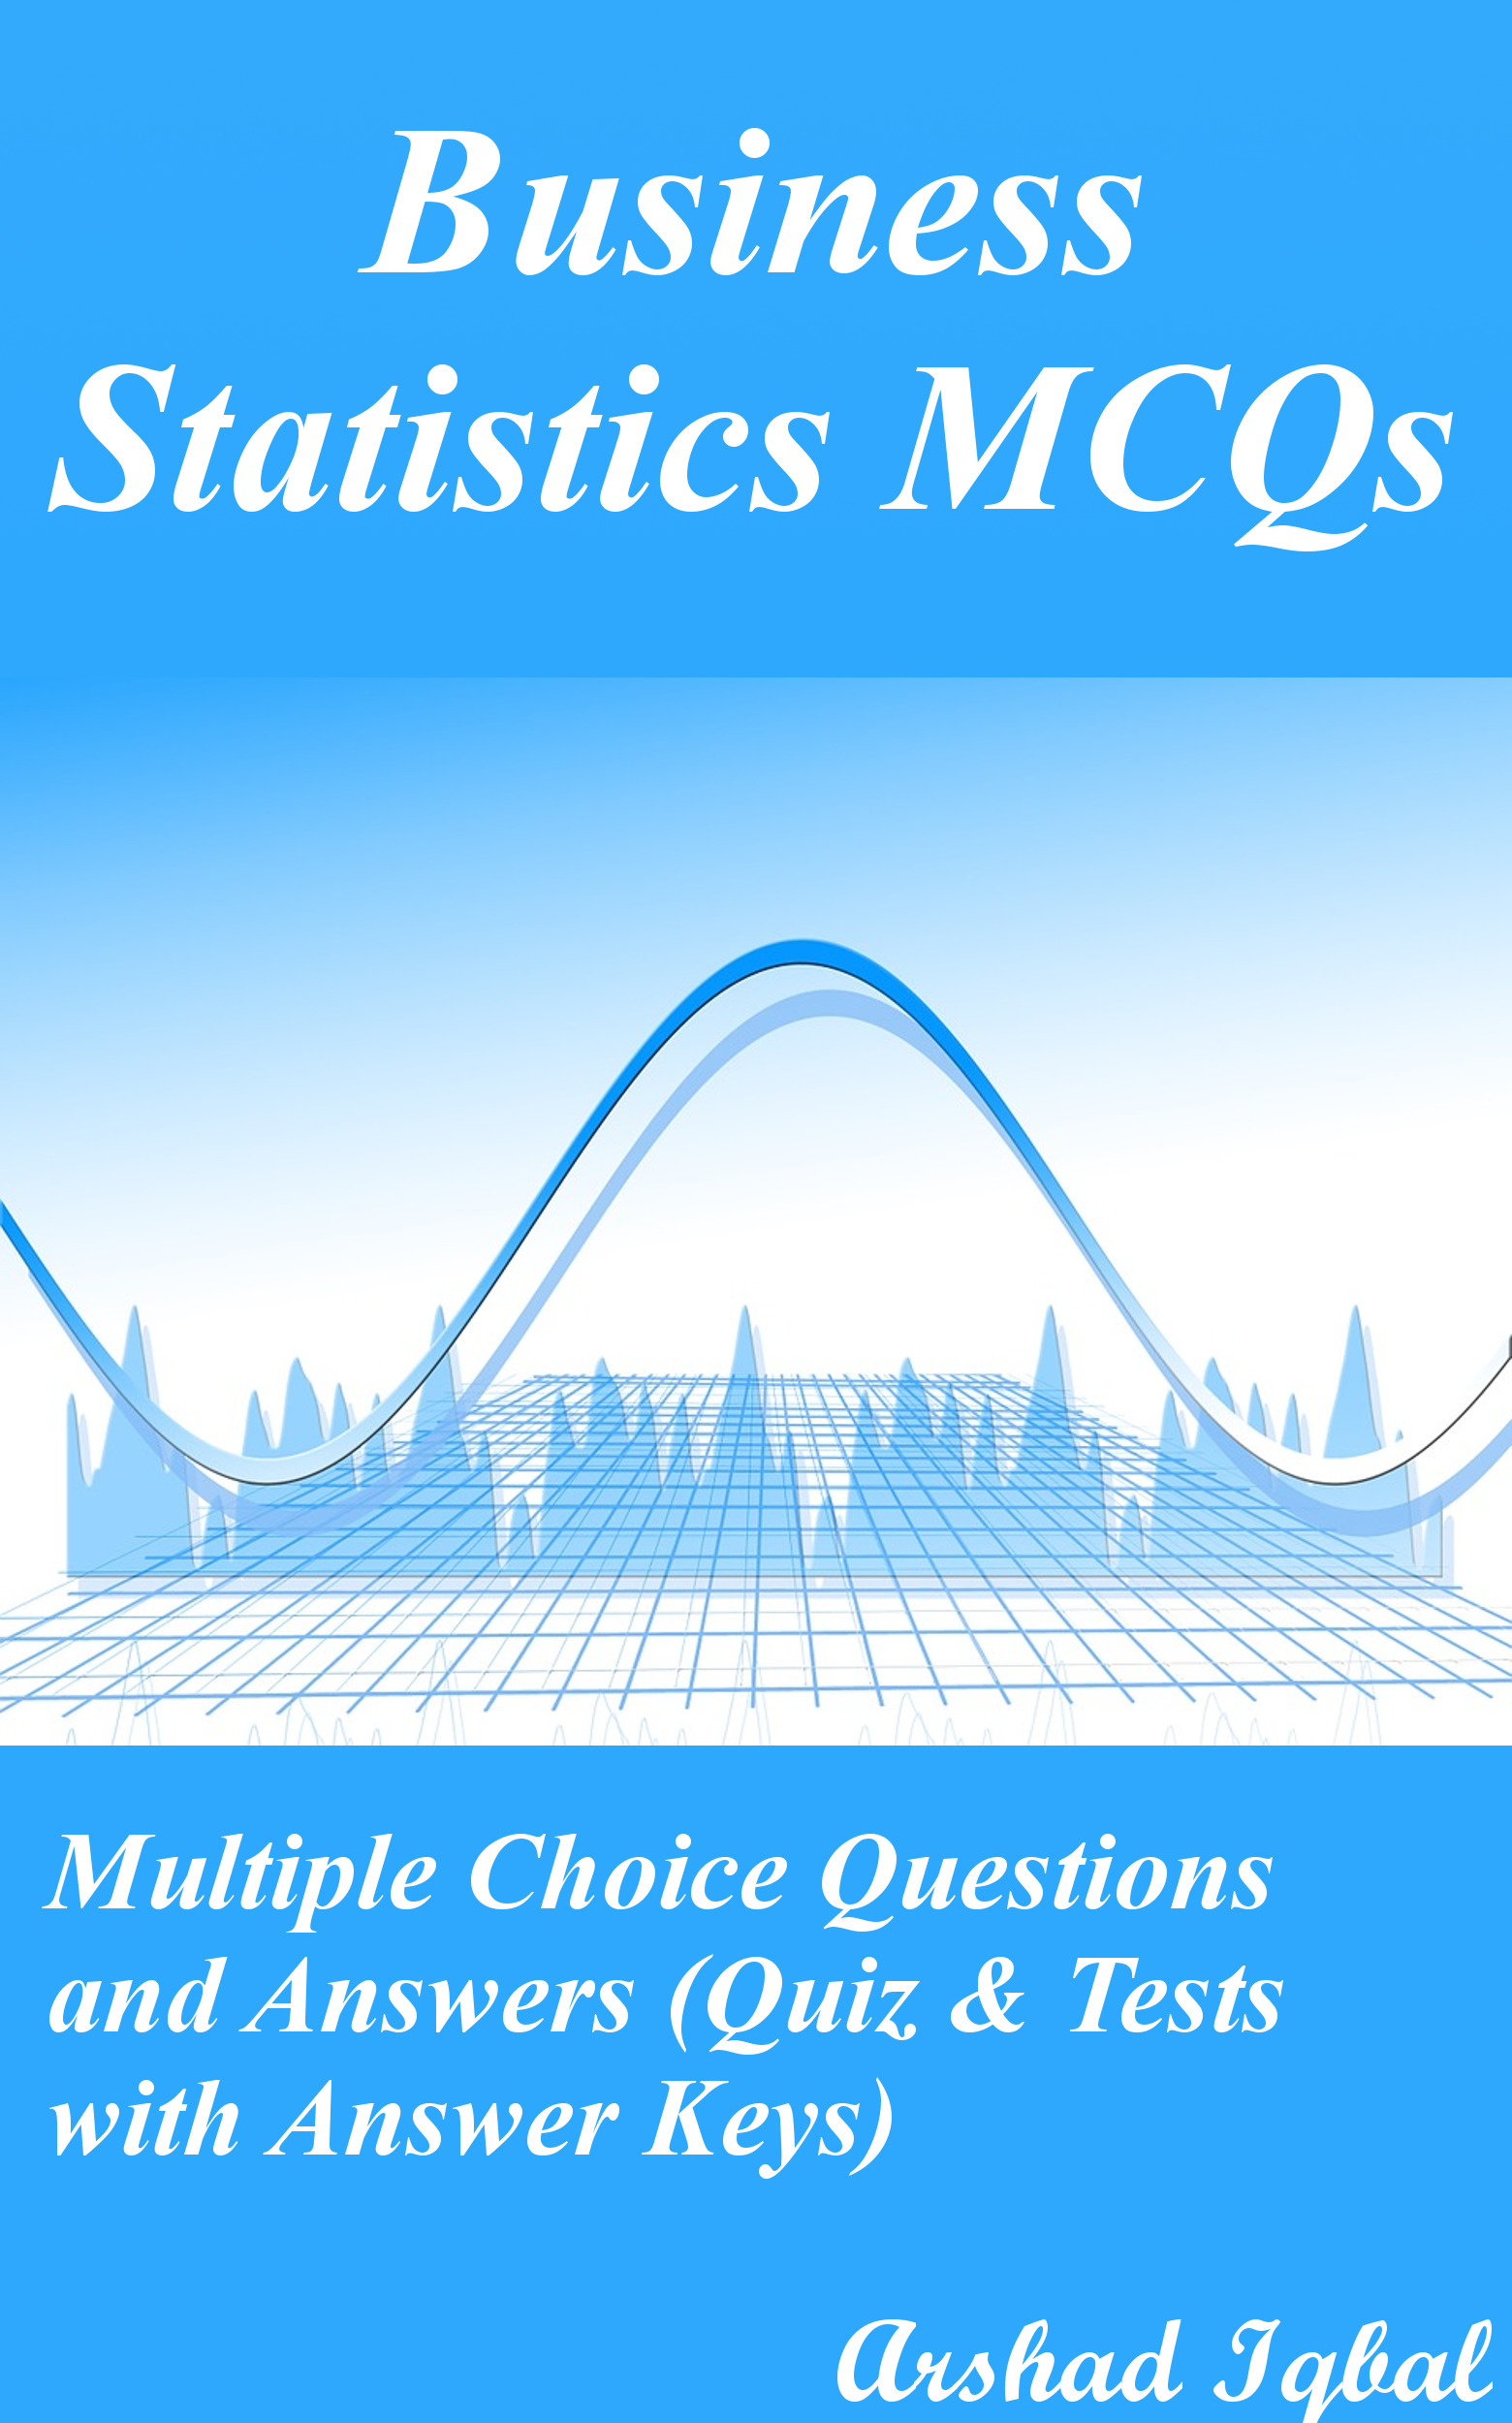 Business Statistics Multiple Choice Questions and Answers (MCQs): Quizzes & Practice Tests with Answer Key